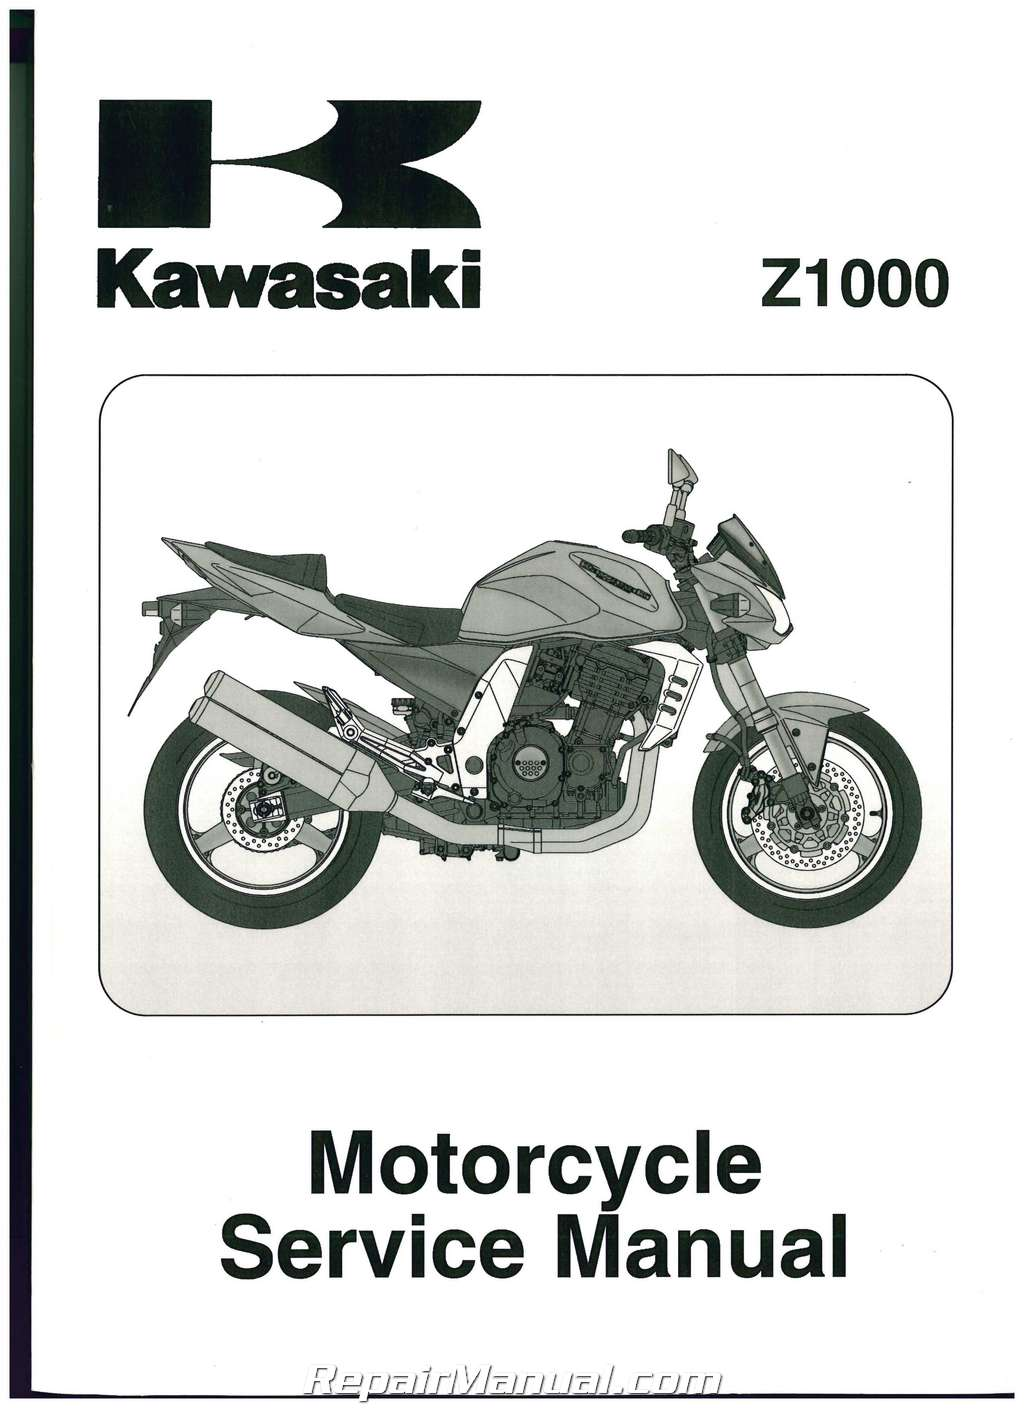 ... 2003-2006 Kawasaki ZR1000A Z1000 Service Manual. Sale!  doc01111520151222154009_001